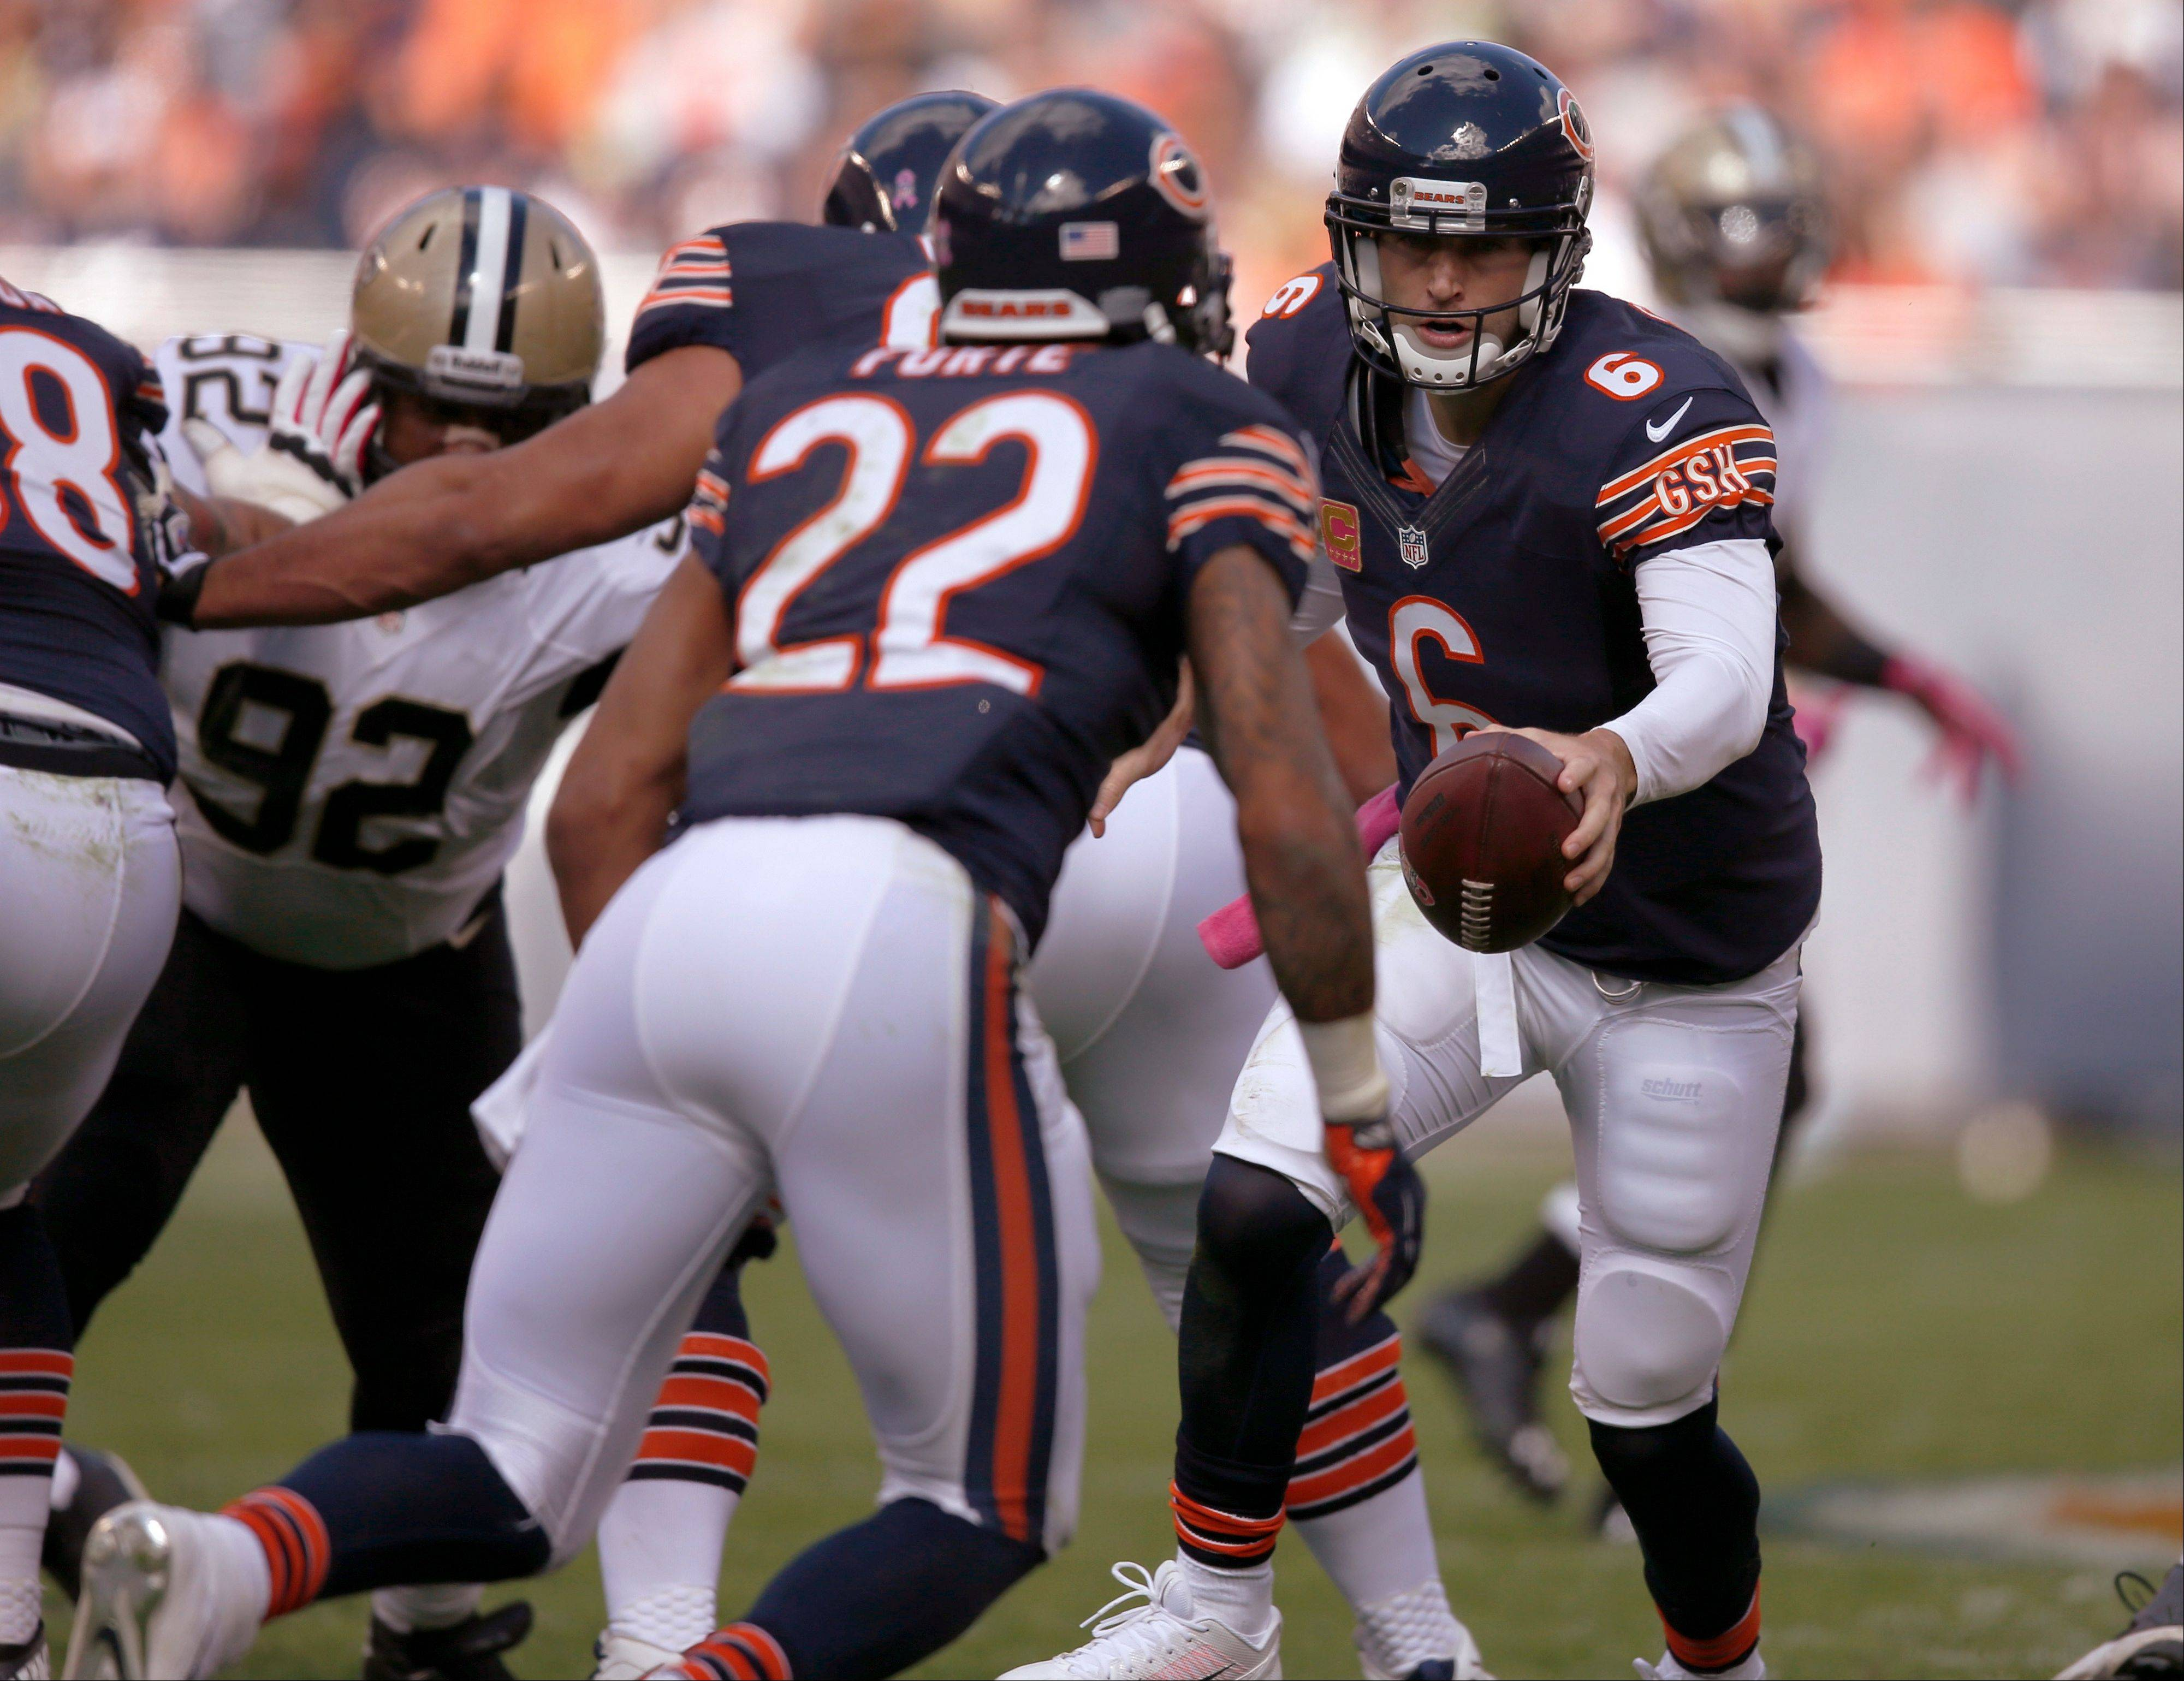 Another rocky start by quarterback Jay Cutler and the Bears' offense Sunday created a hole that was too deep to escape against the undefeated Saints.